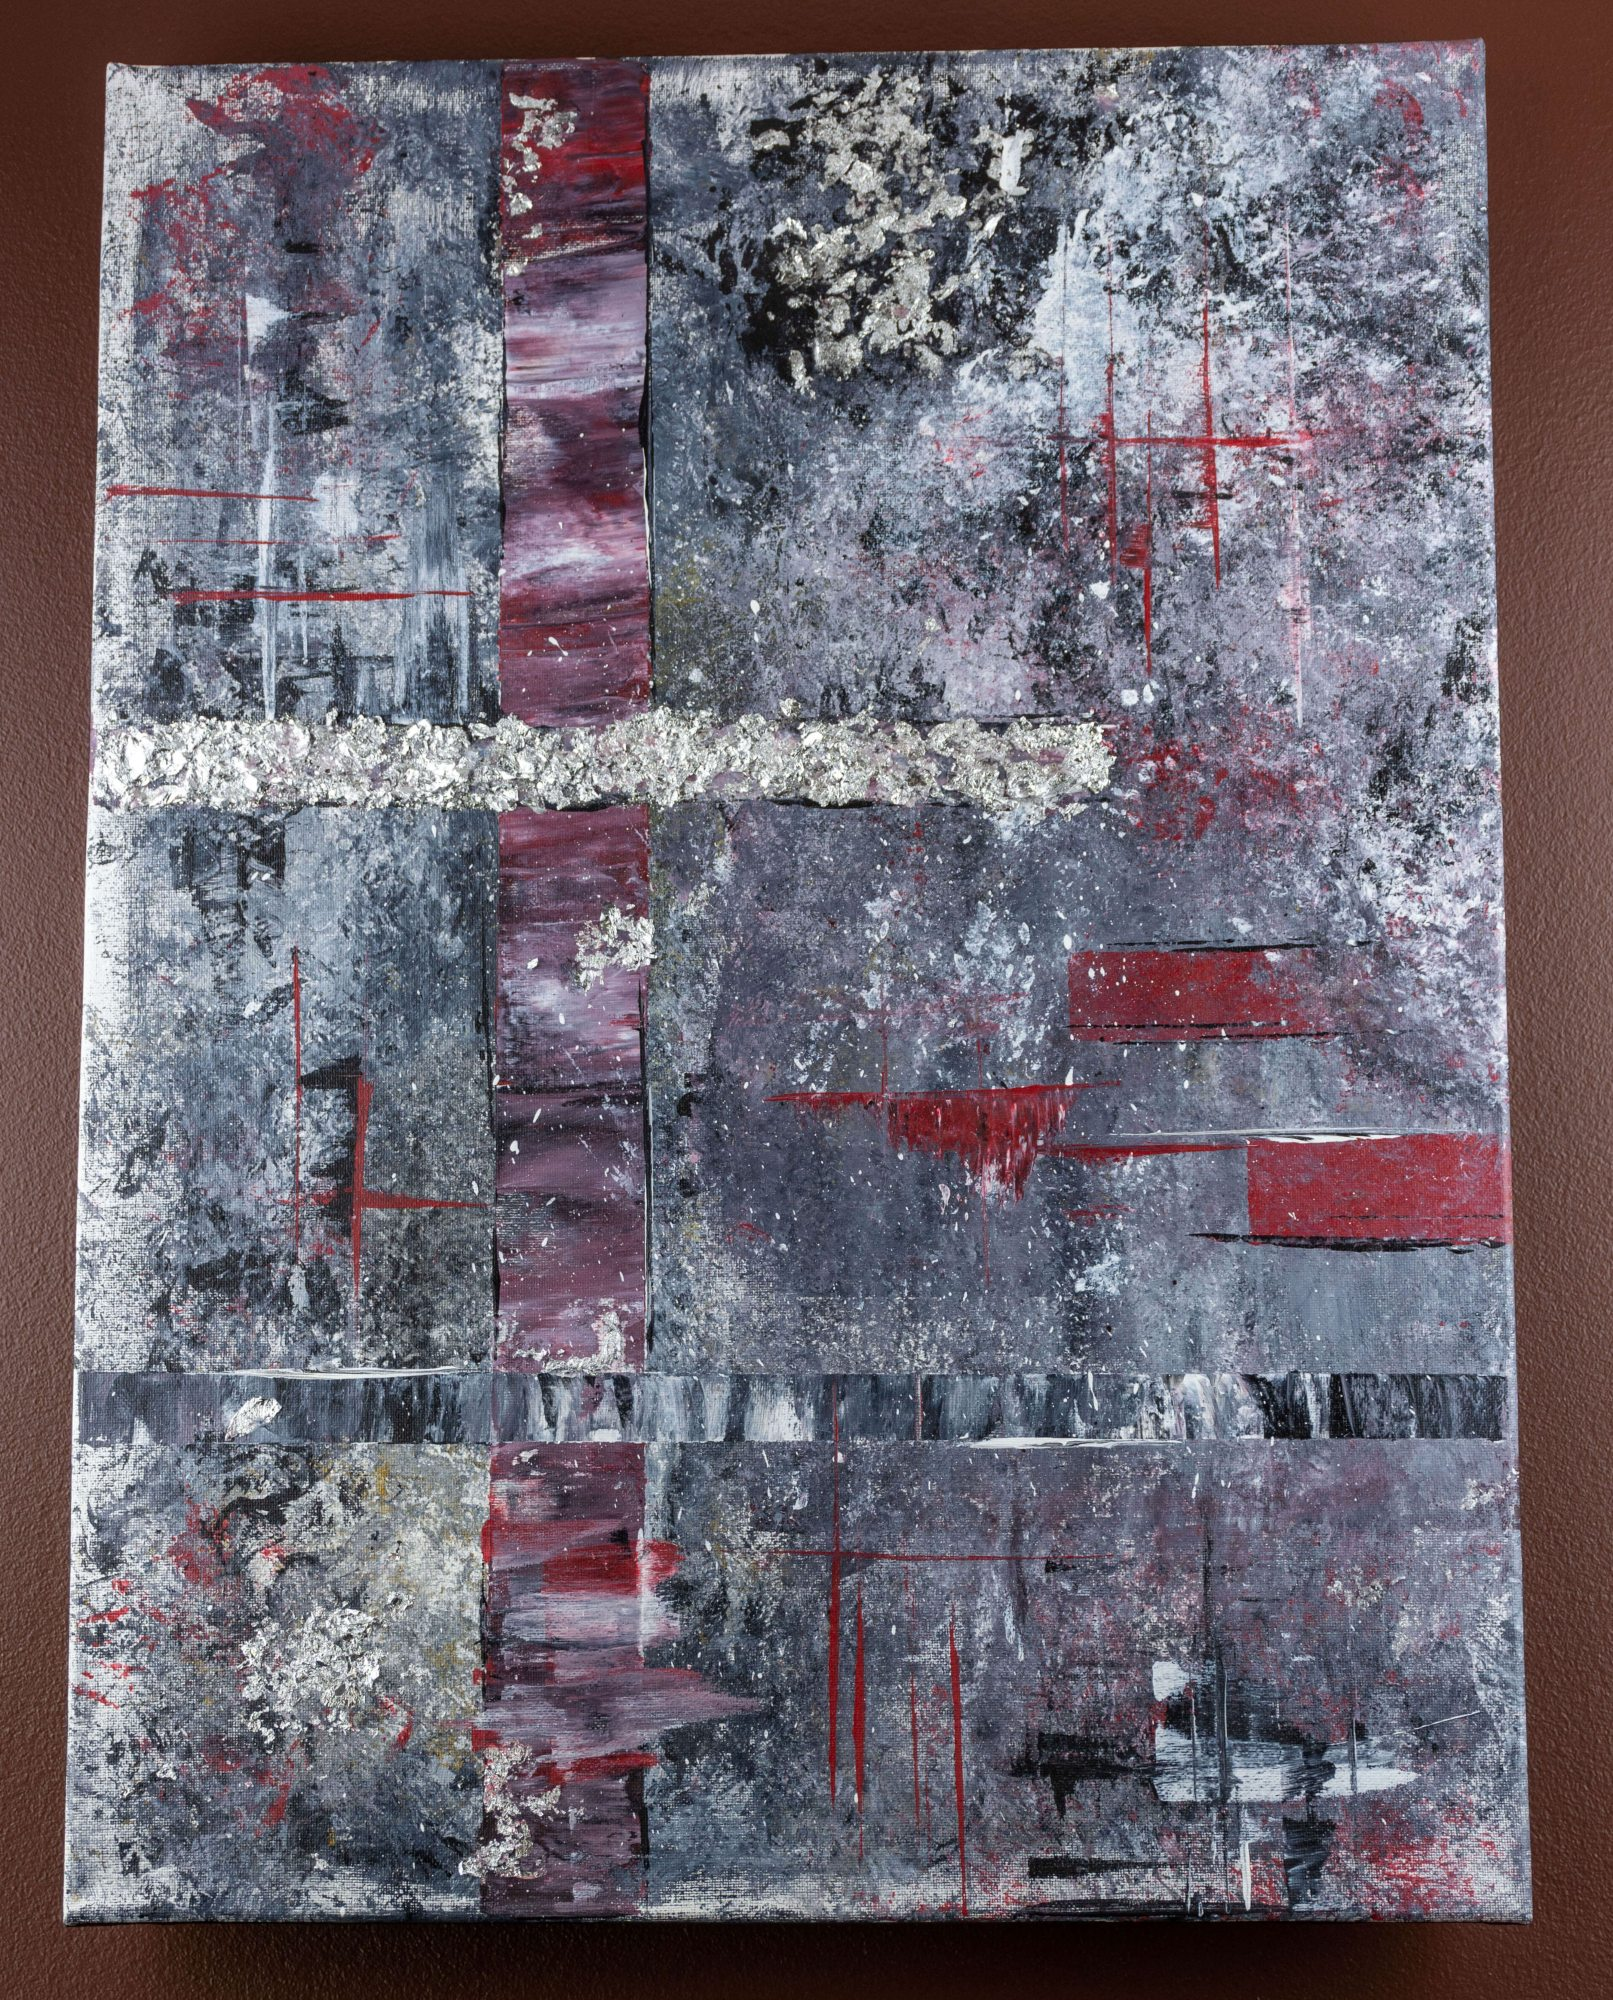 Frosty vision - abstract art - silver - red - black - white - grey - size 18in x 24in